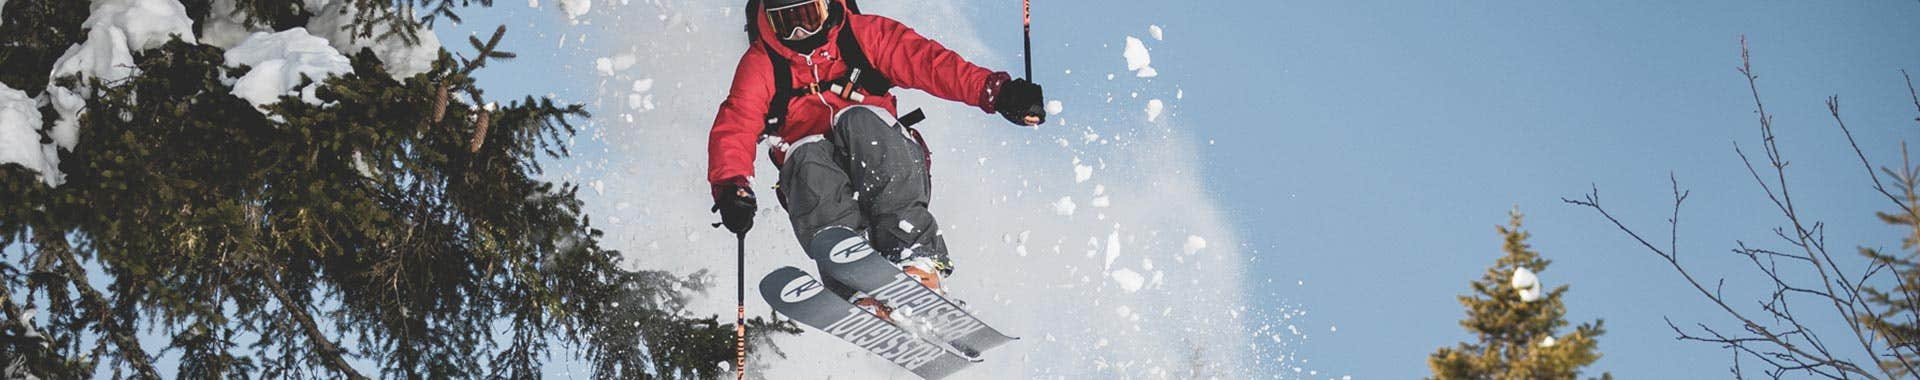 Freeride skis